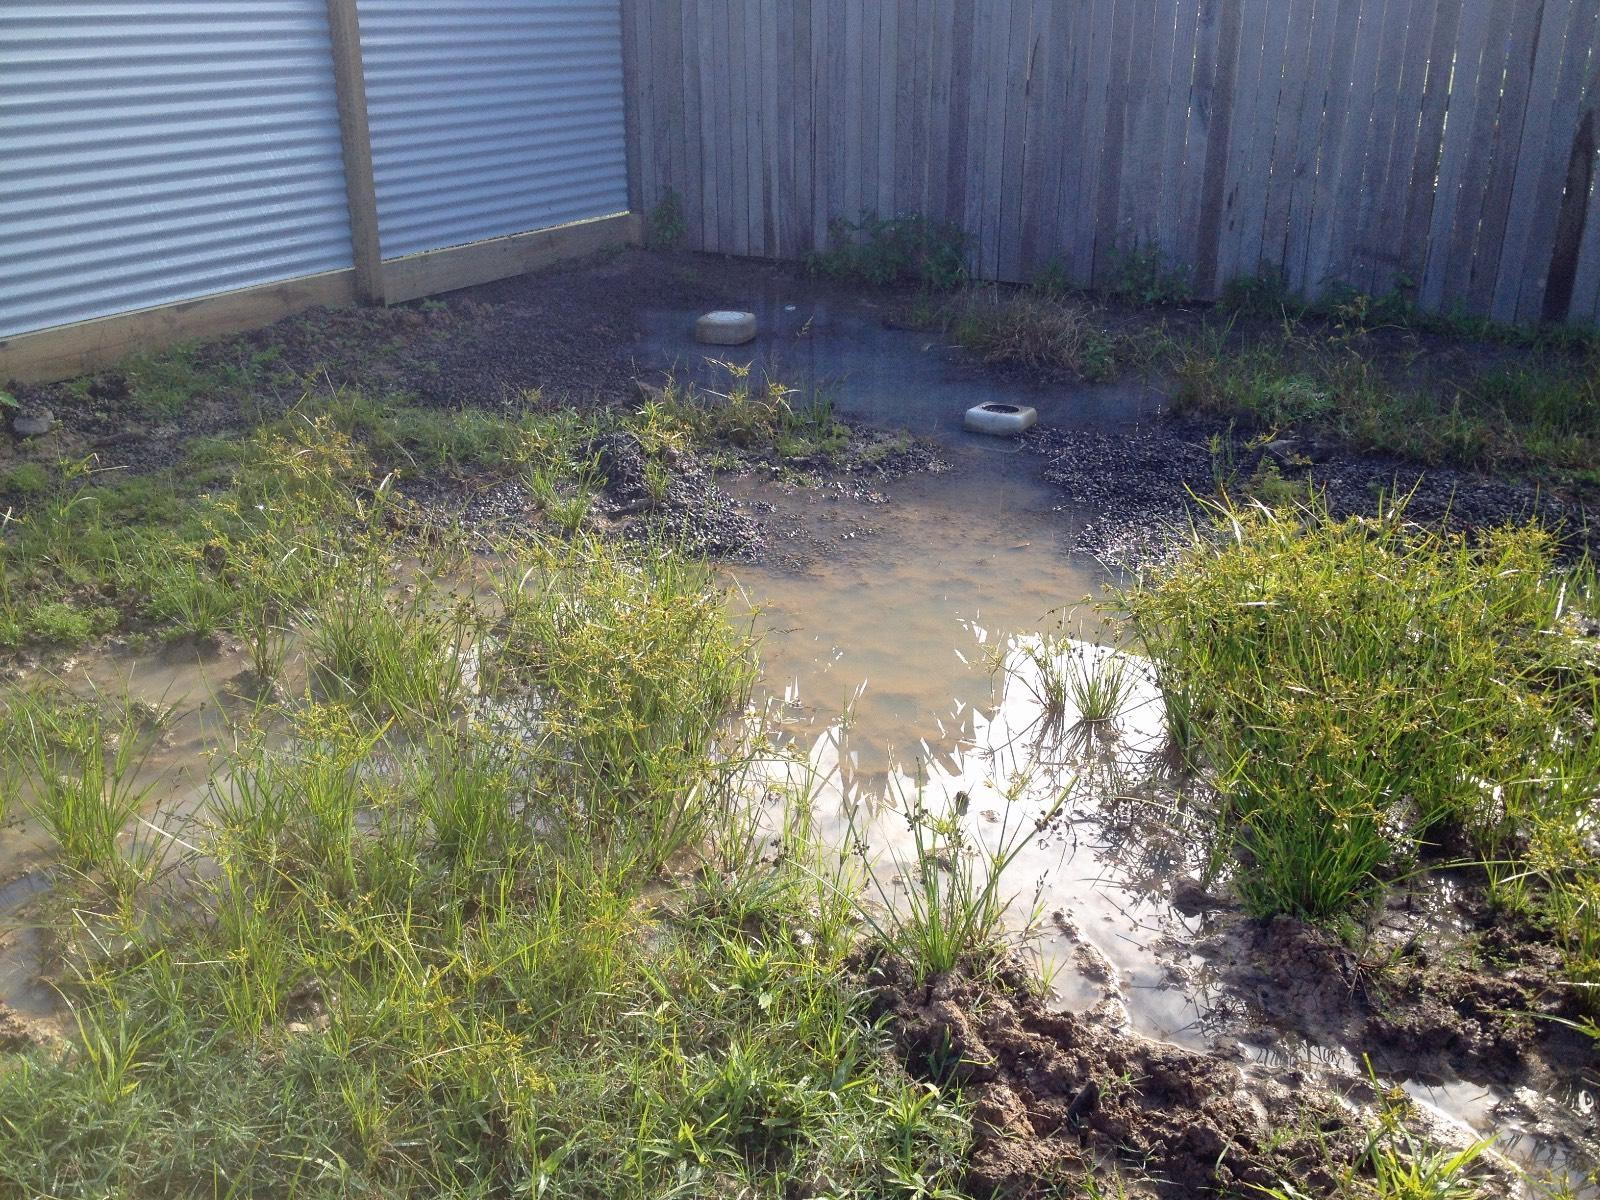 Water tanks and building codes